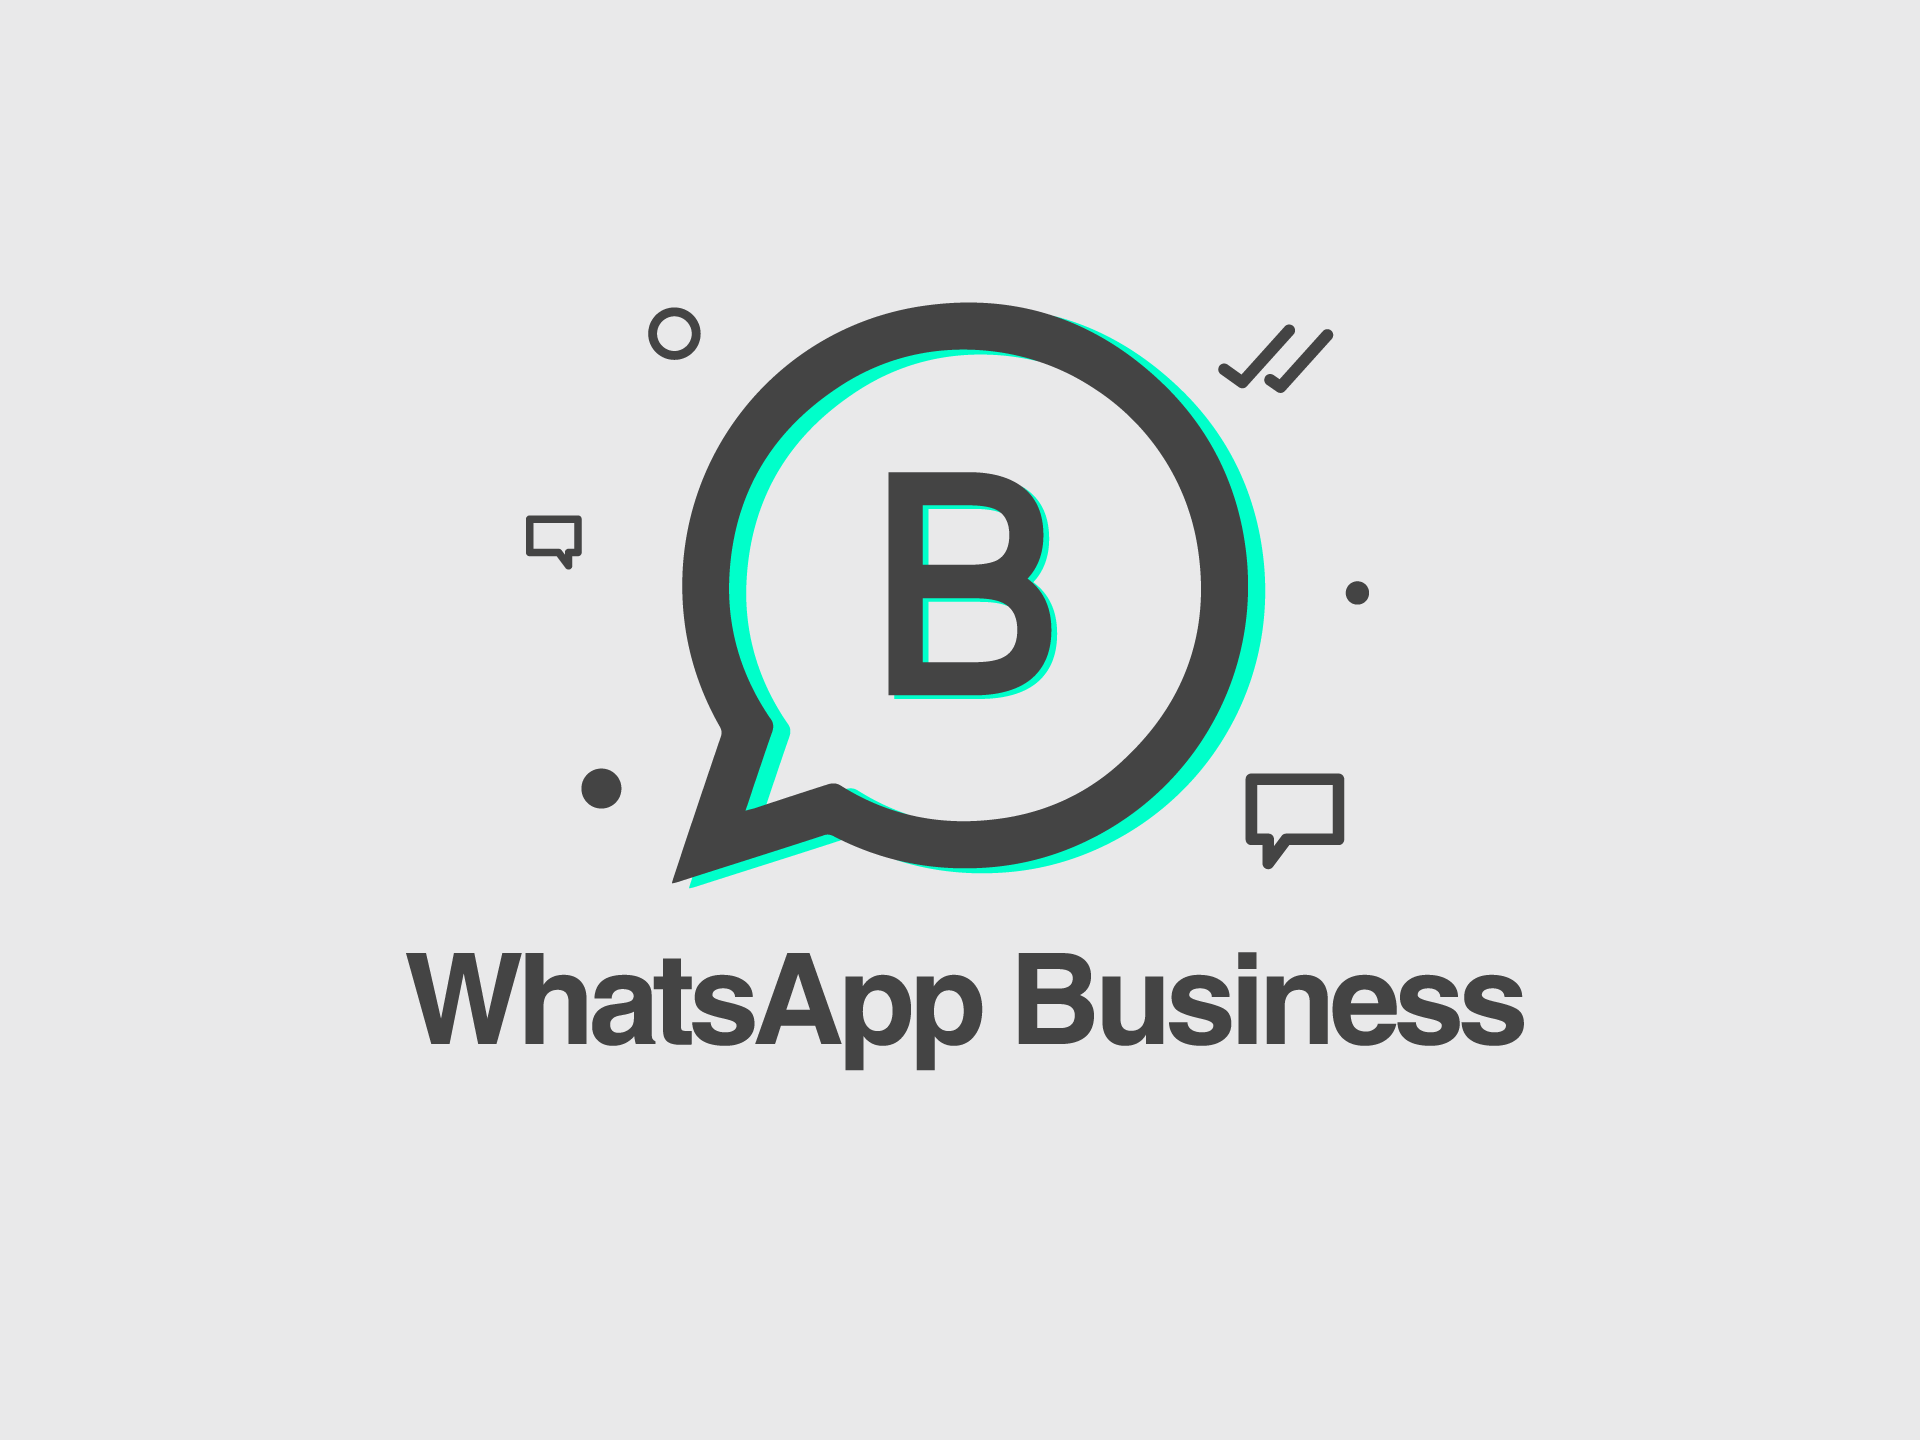 Miniatura_WhatsApp_Business_blog Parnaso